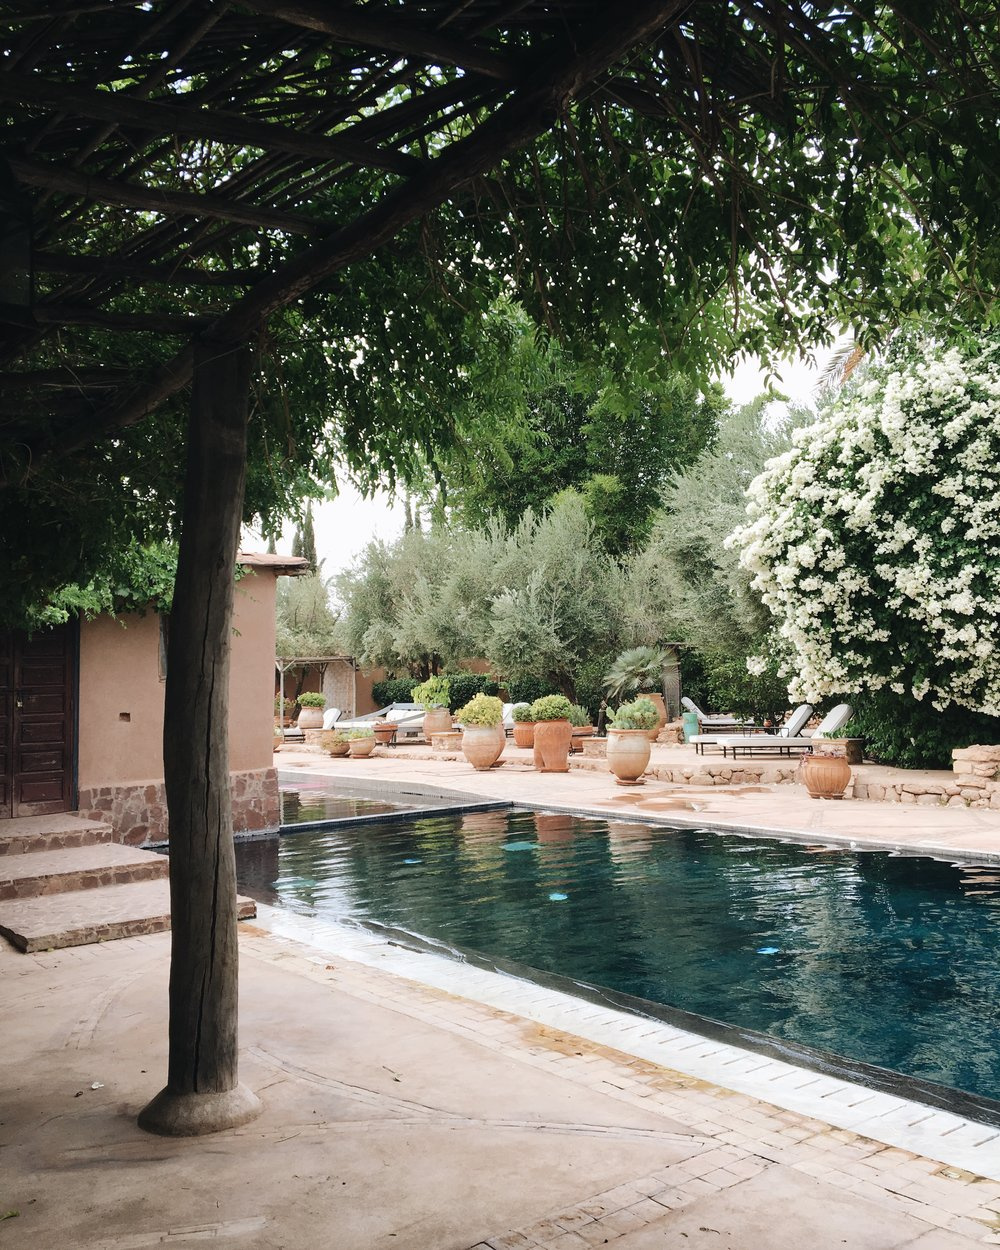 Club Swimming Pool at The Beldi Country Club | Marrakech